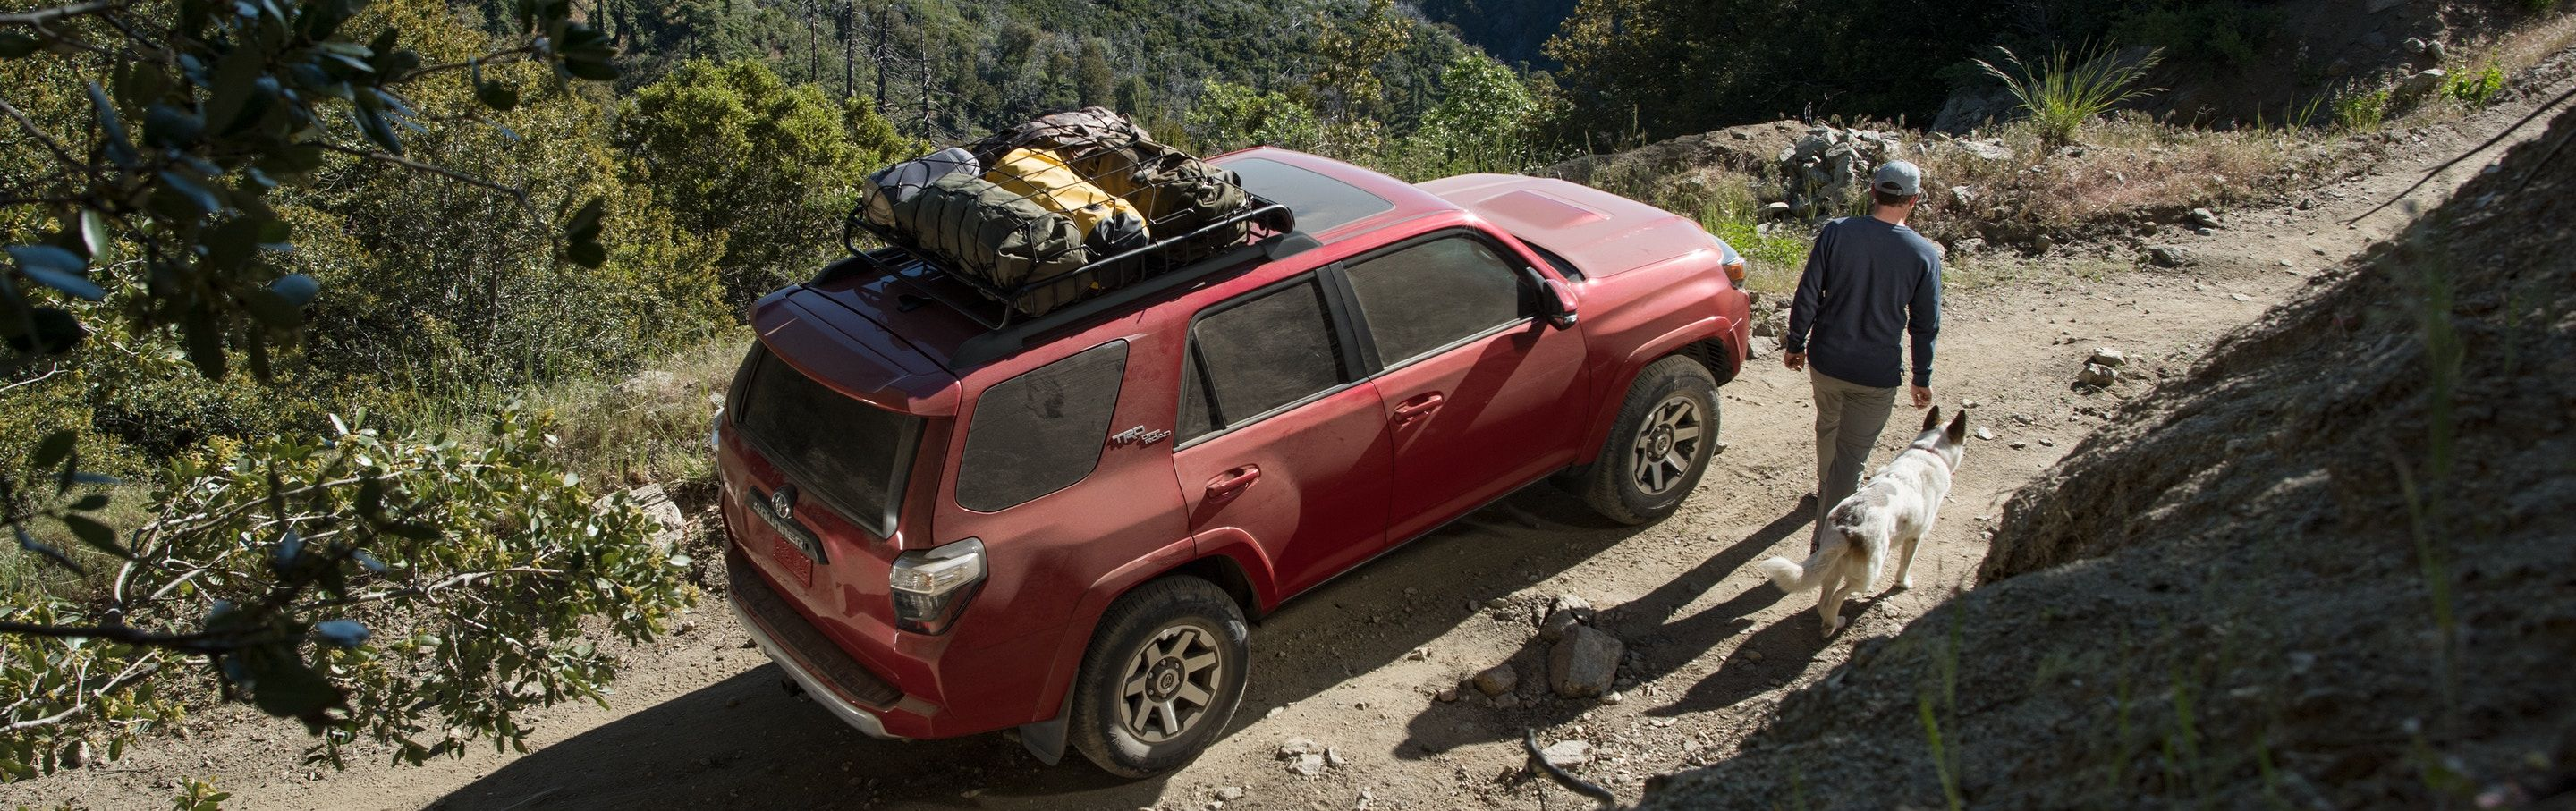 2019 Toyota 4Runner Financing near Des Moines, IA